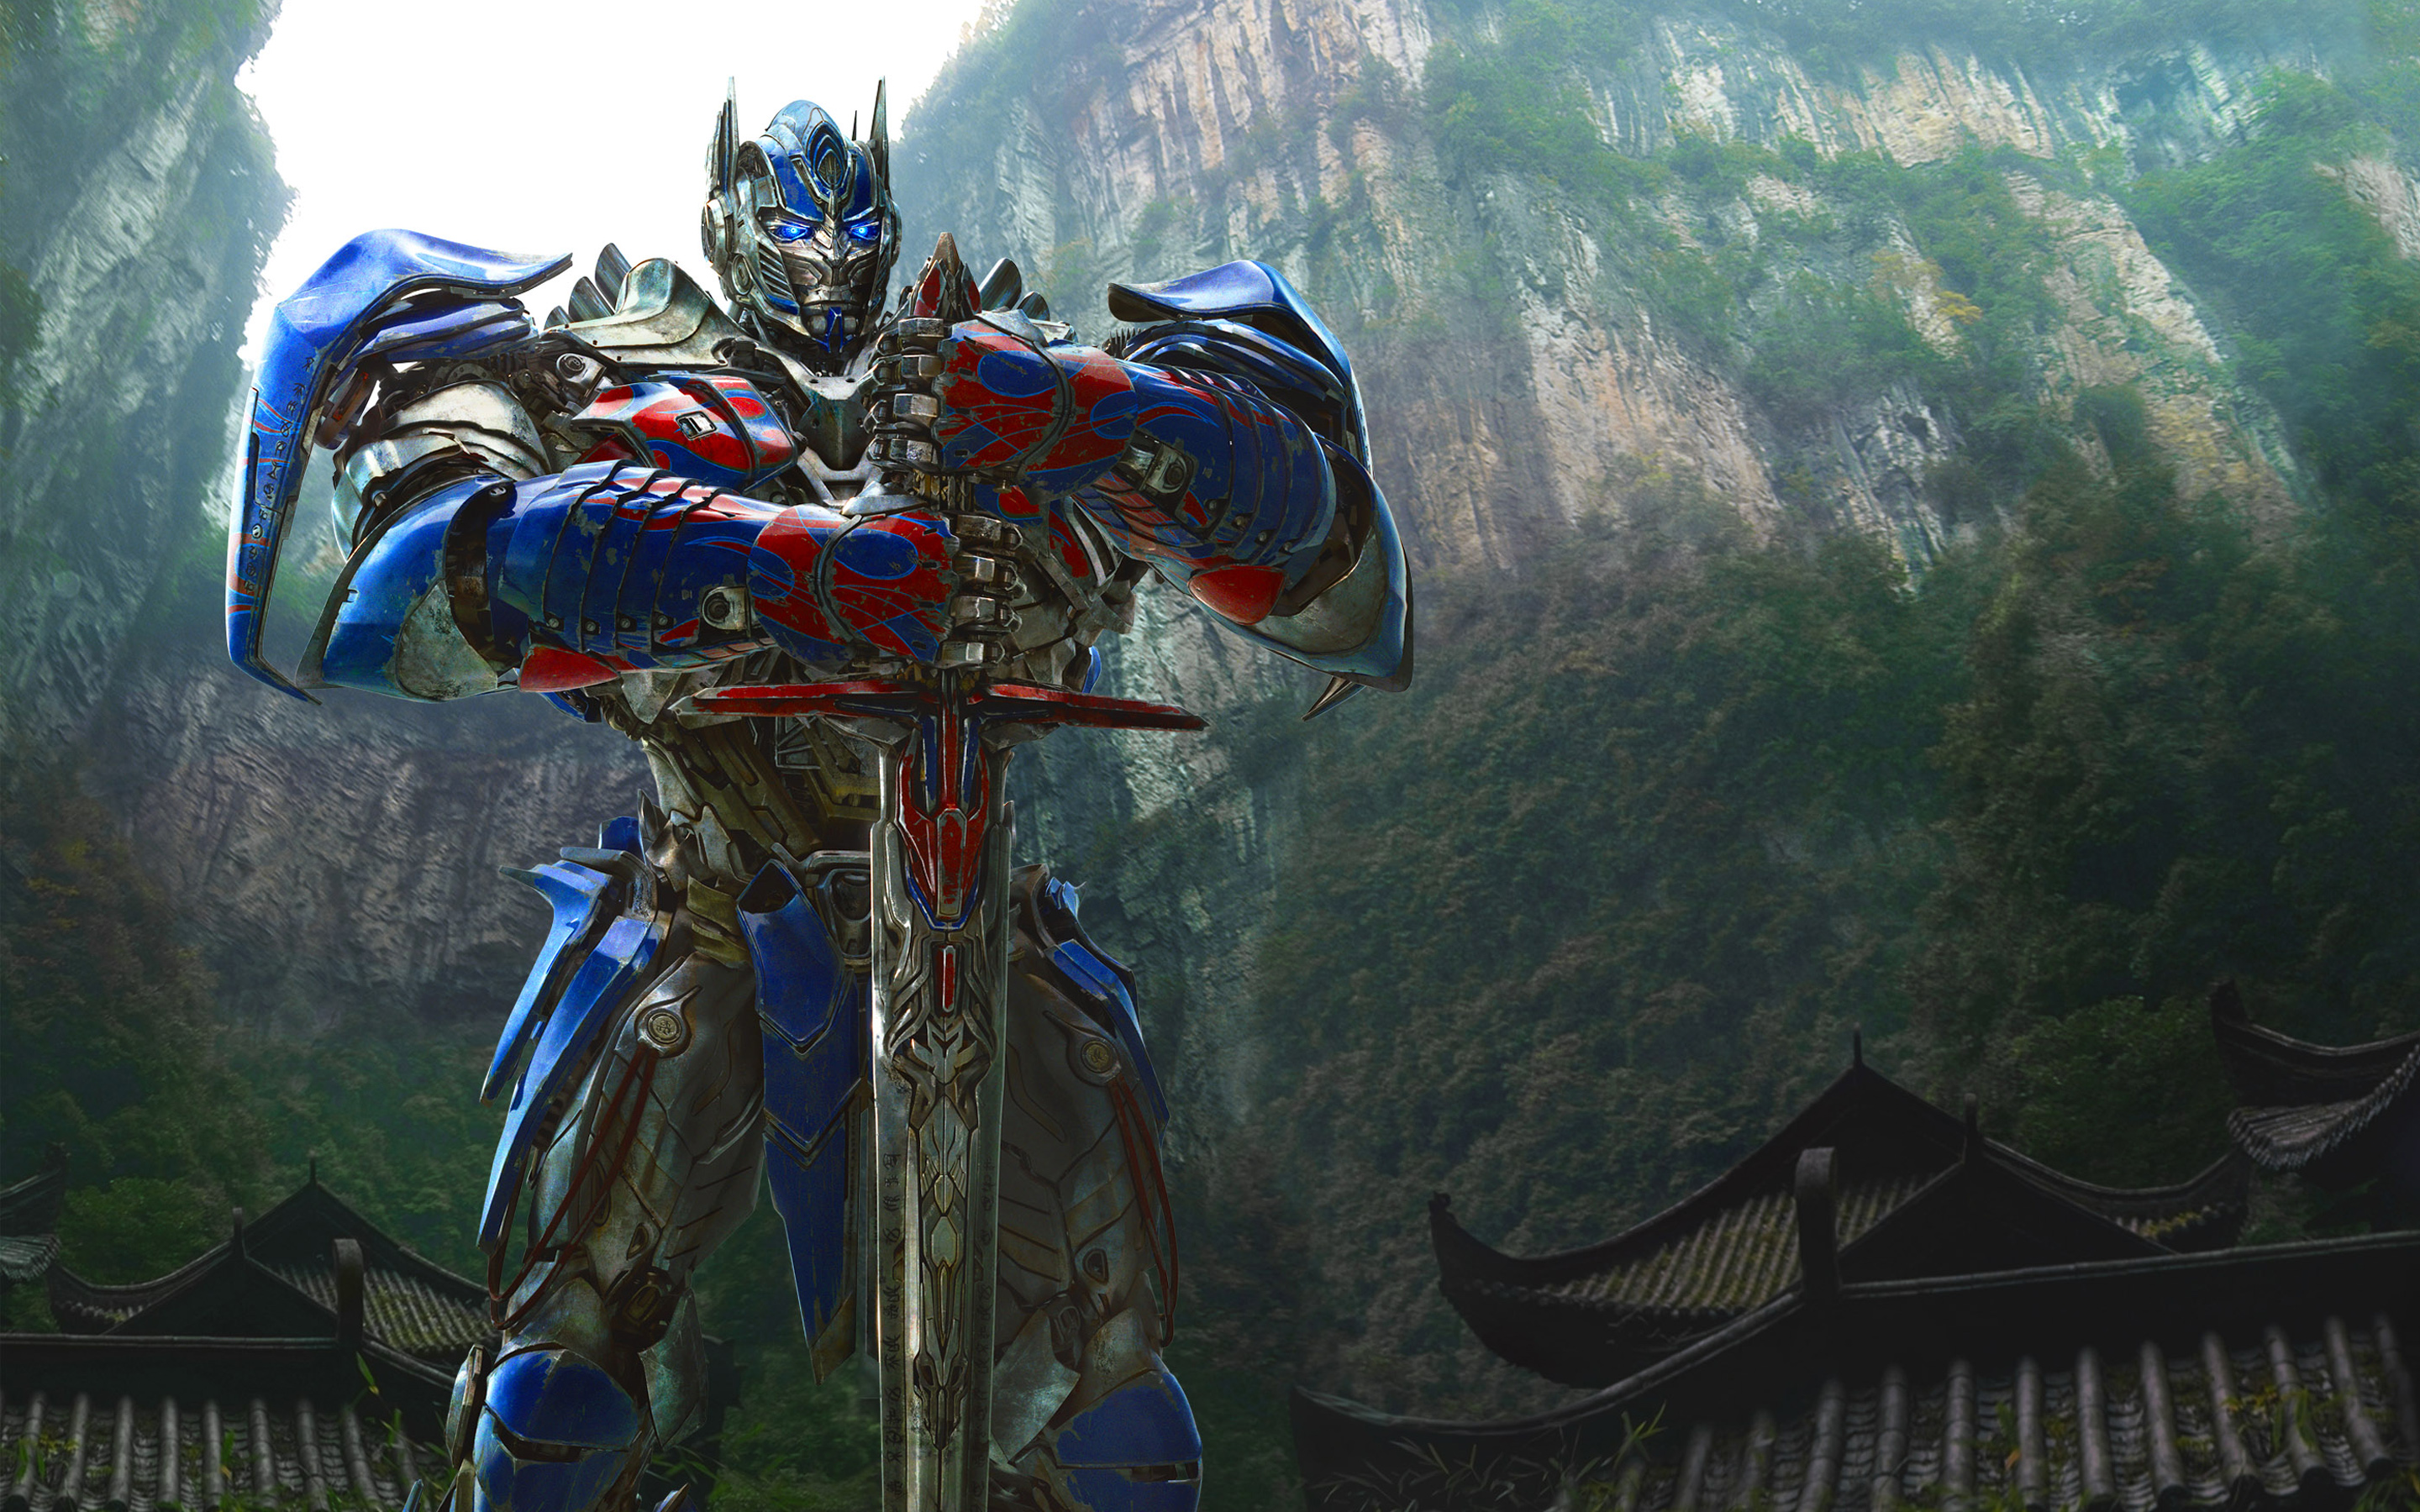 HD Wallpapers Optimus Prime Transformers